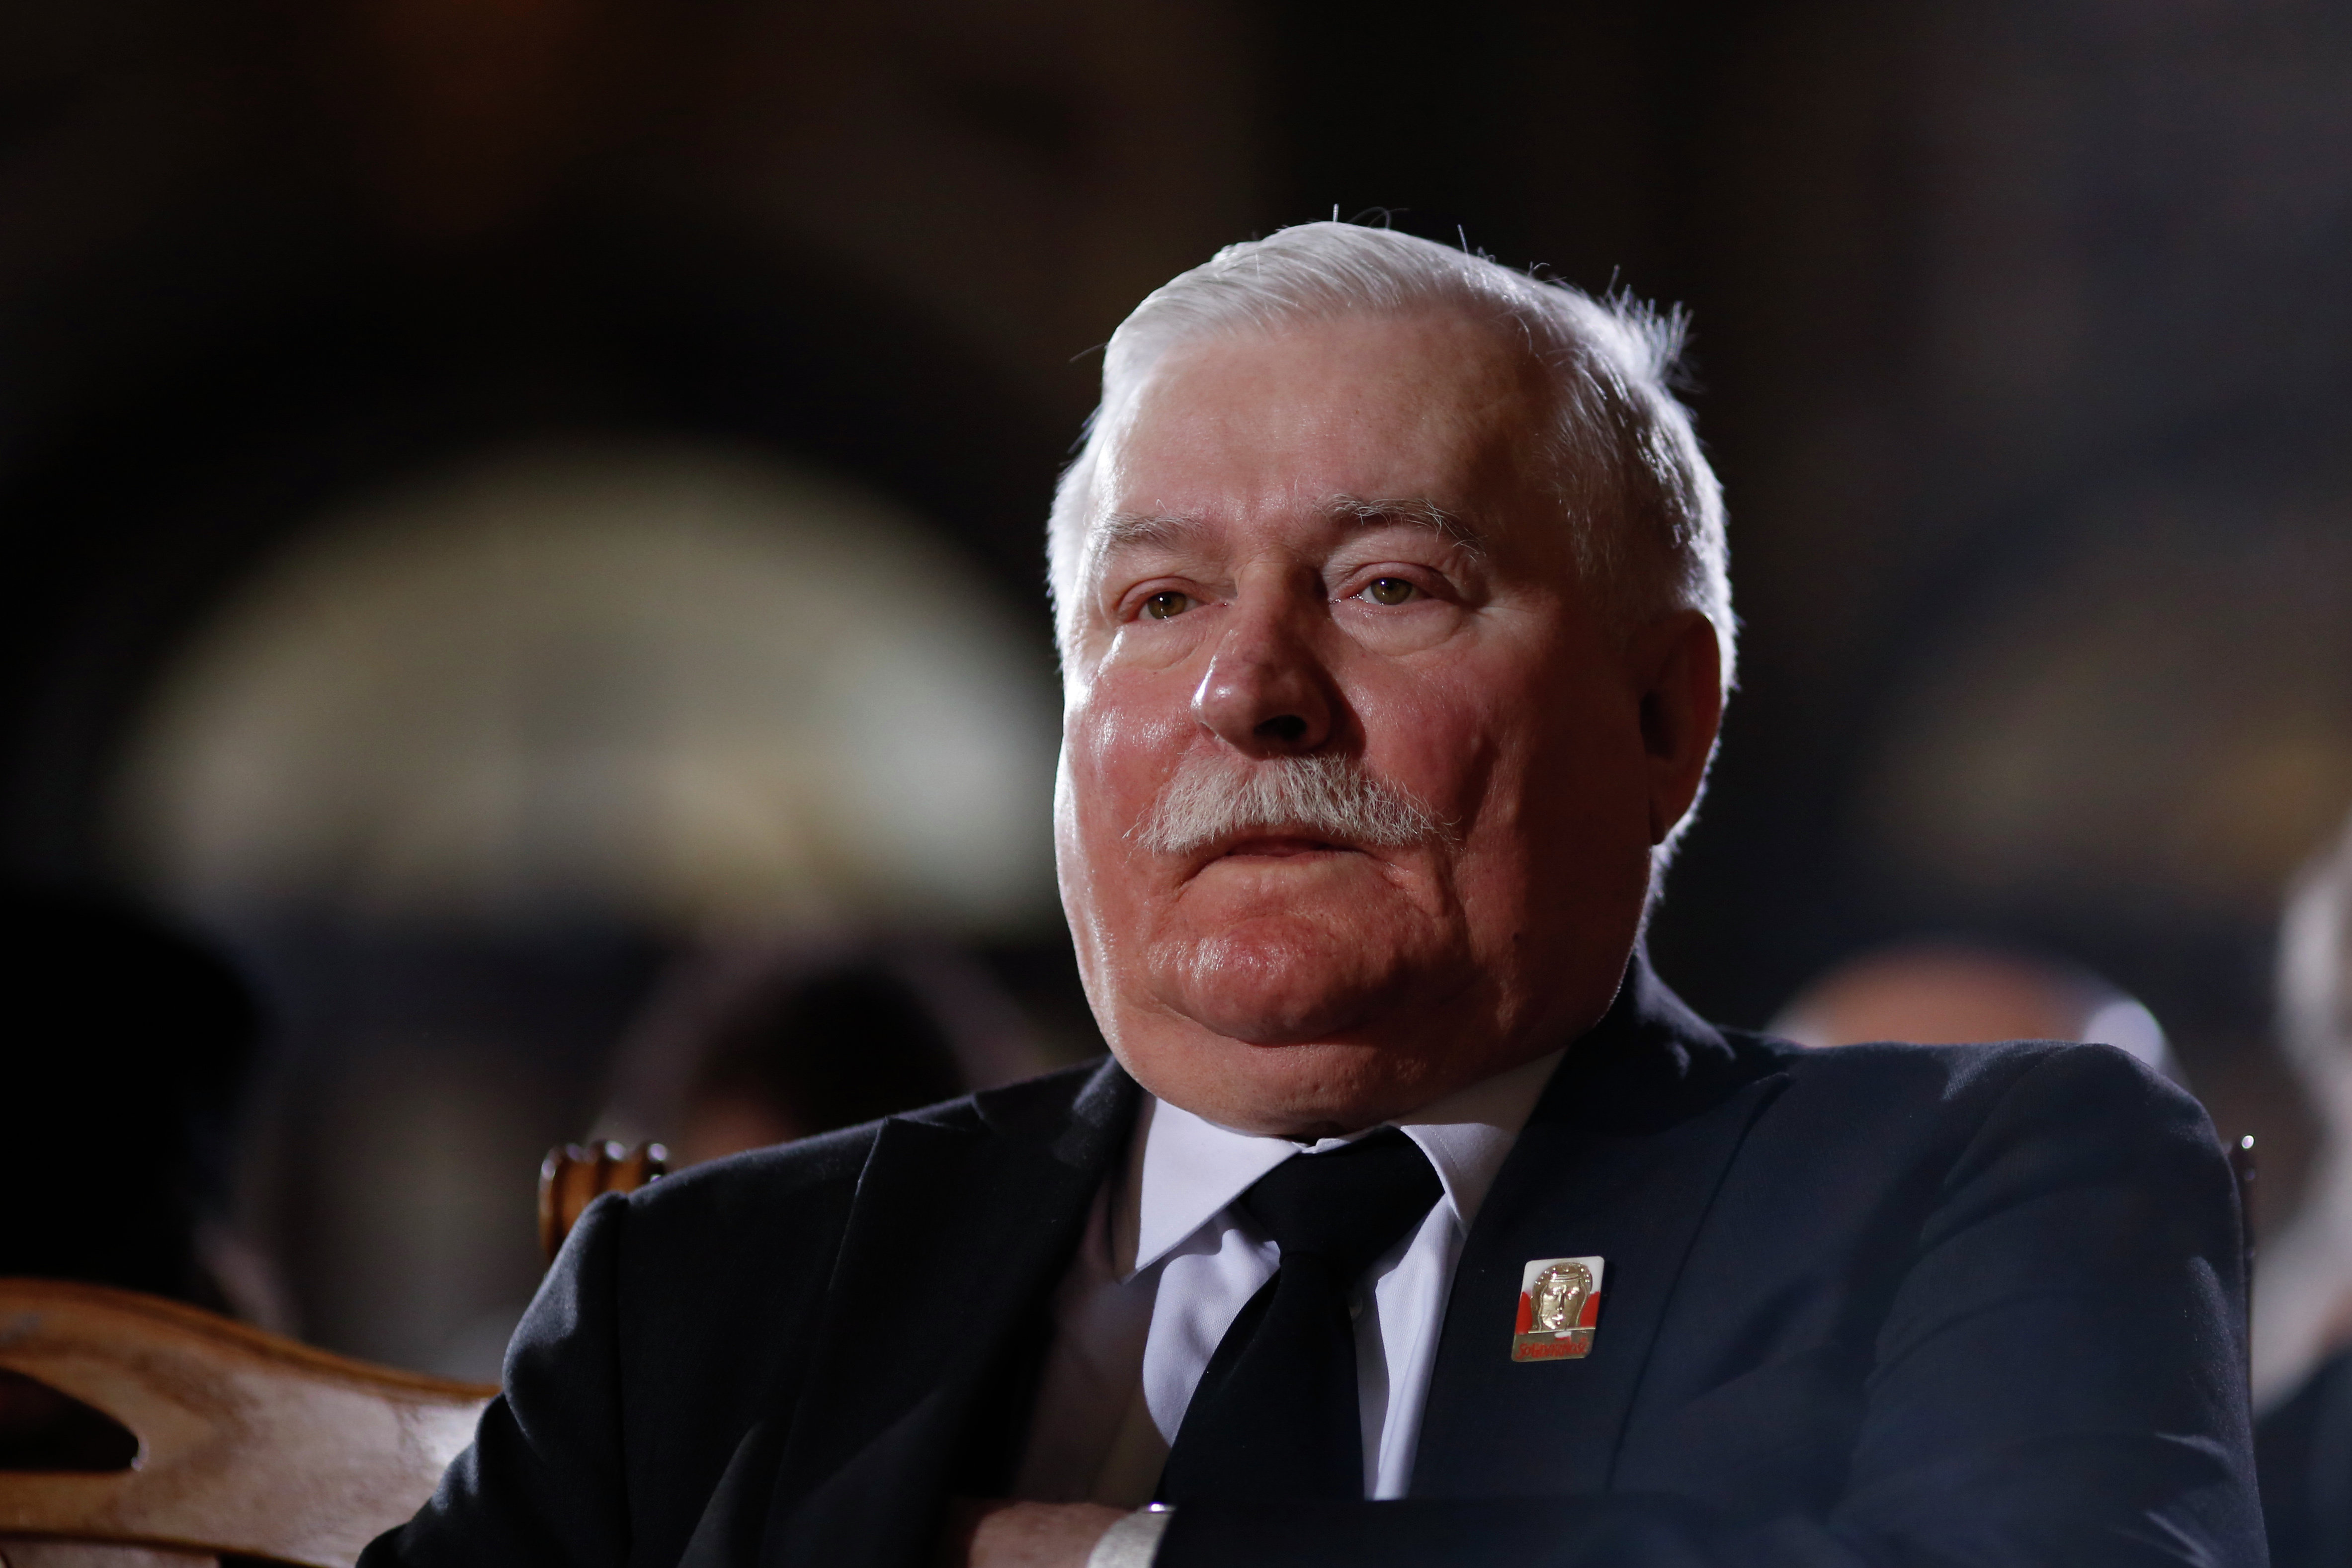 Former Polish President Lech Walesa attends the state funeral of the former German President Richard von Weizsaecker at Berlin Cathedral, the protestant church of Berlin on February 11, 2015